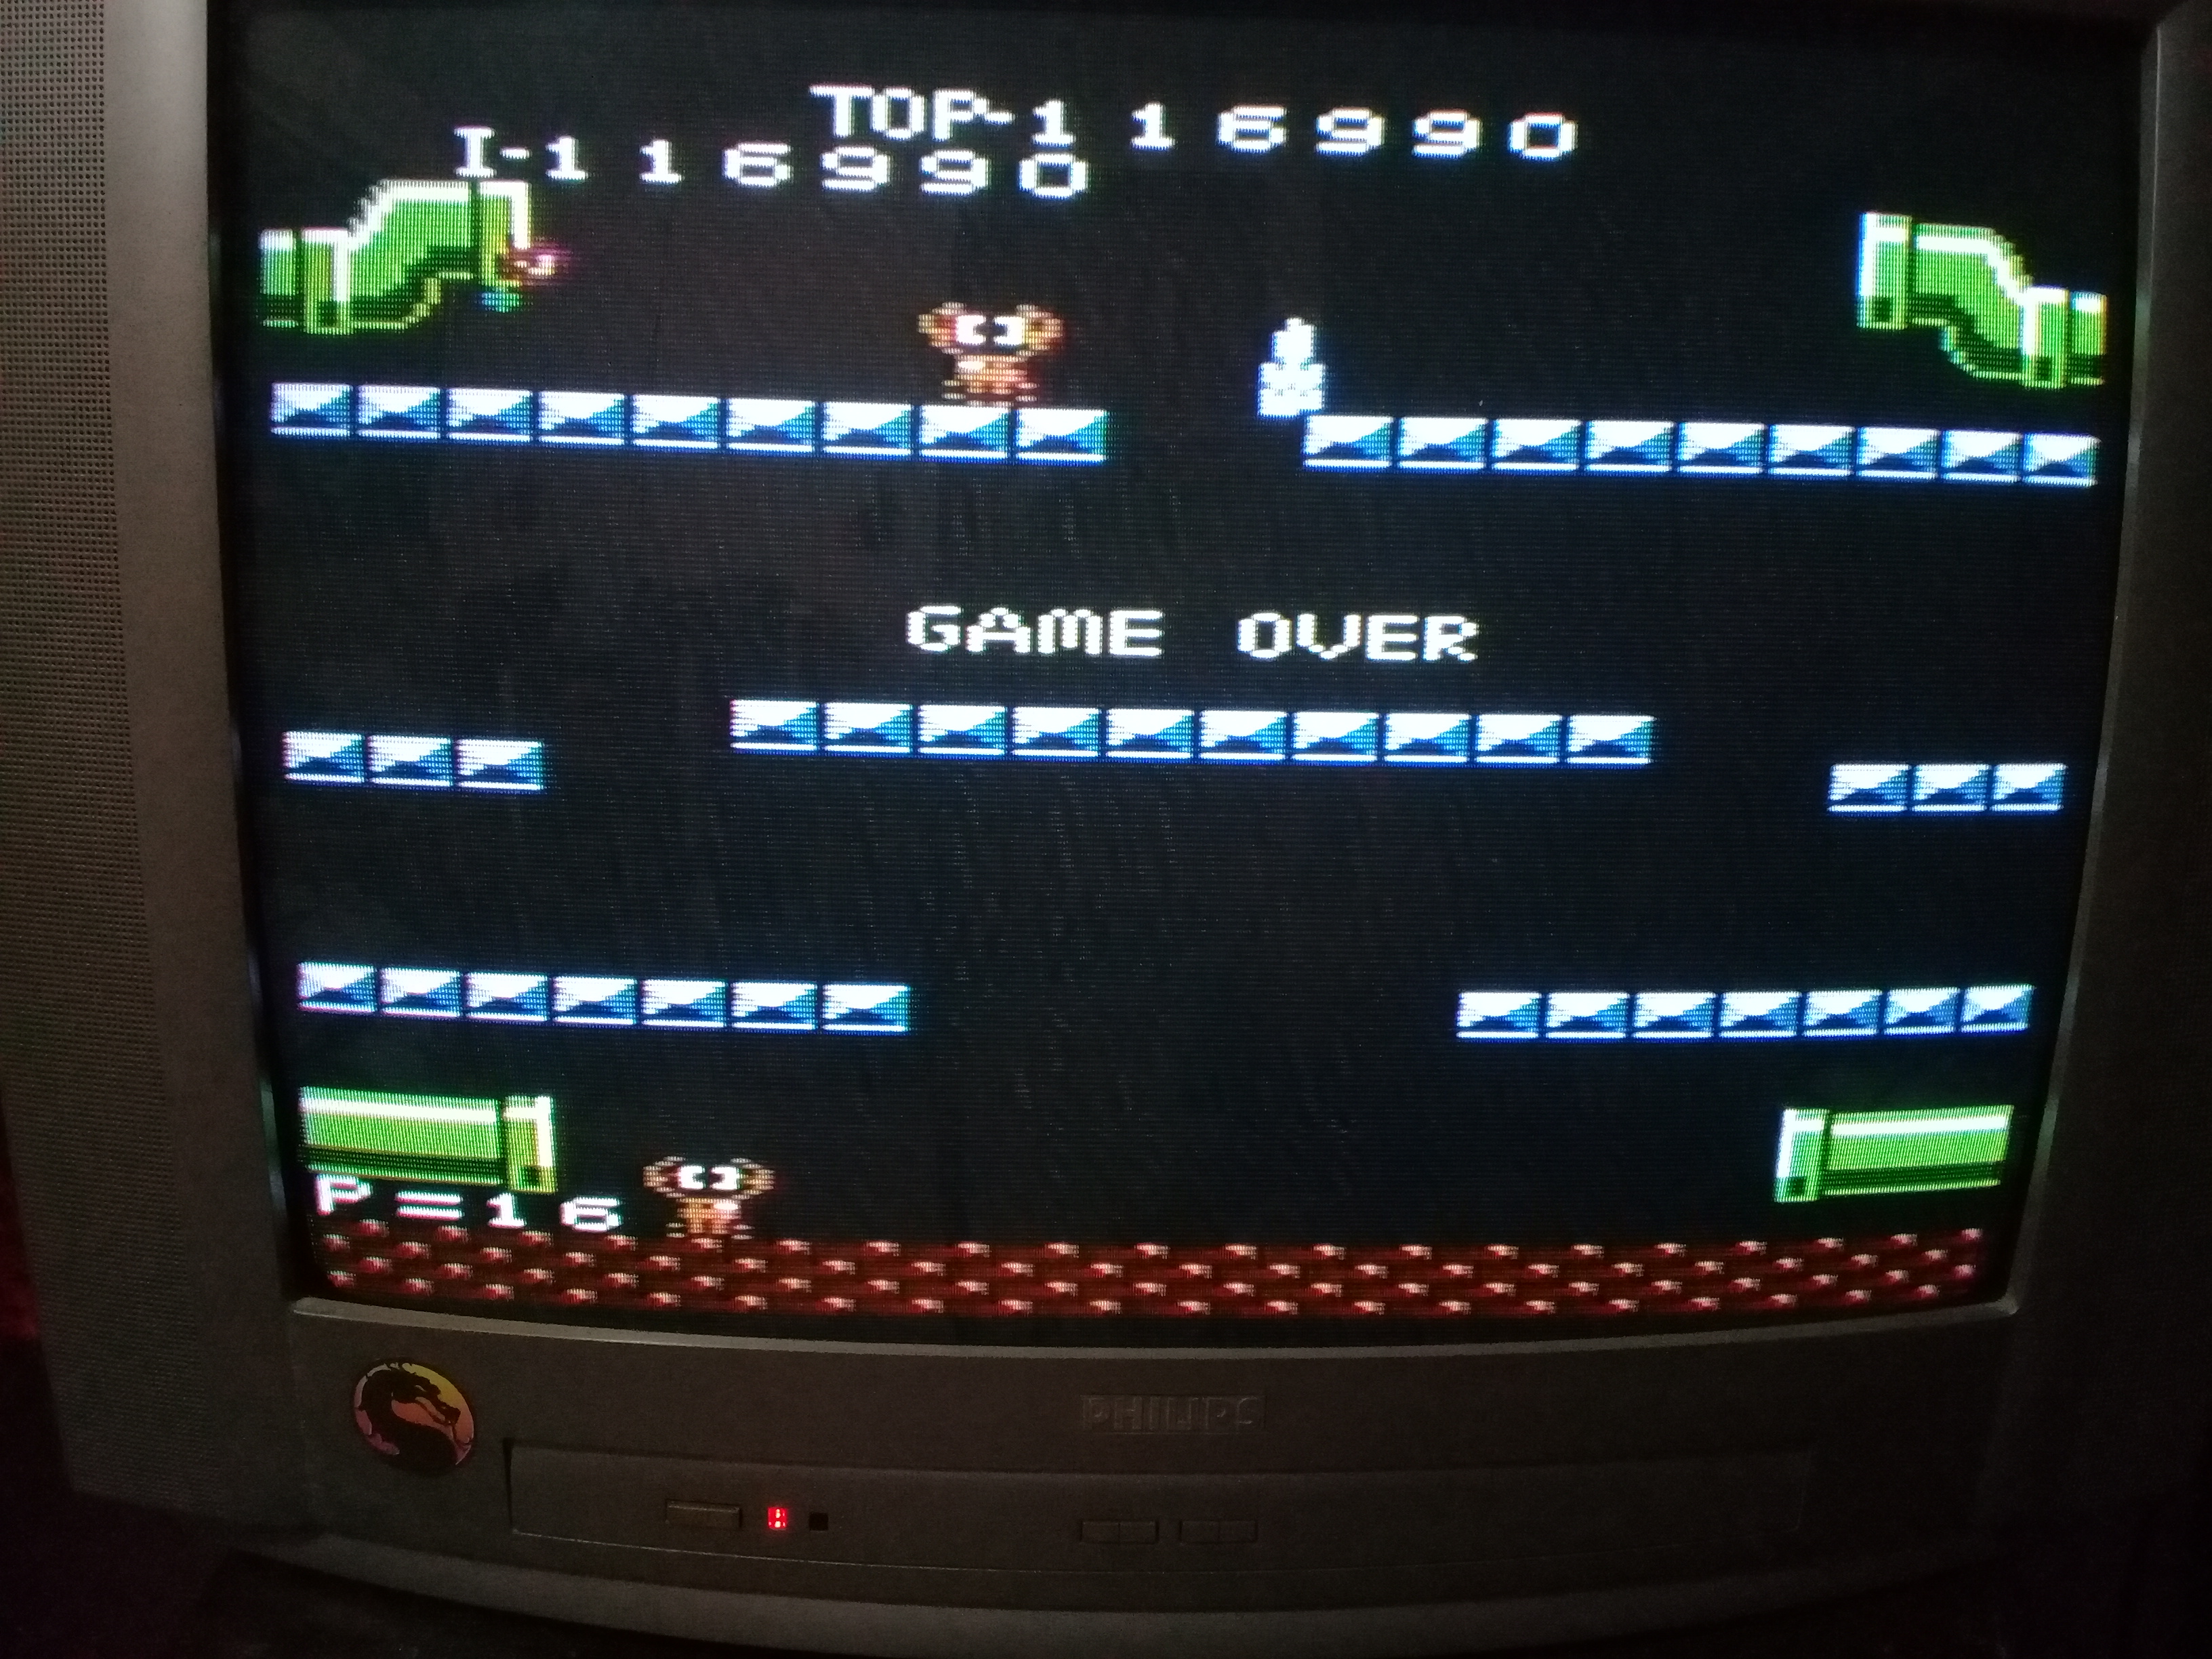 omargeddon: Mario Bros. [Advanced] (Atari 7800) 116,990 points on 2020-10-16 19:12:51